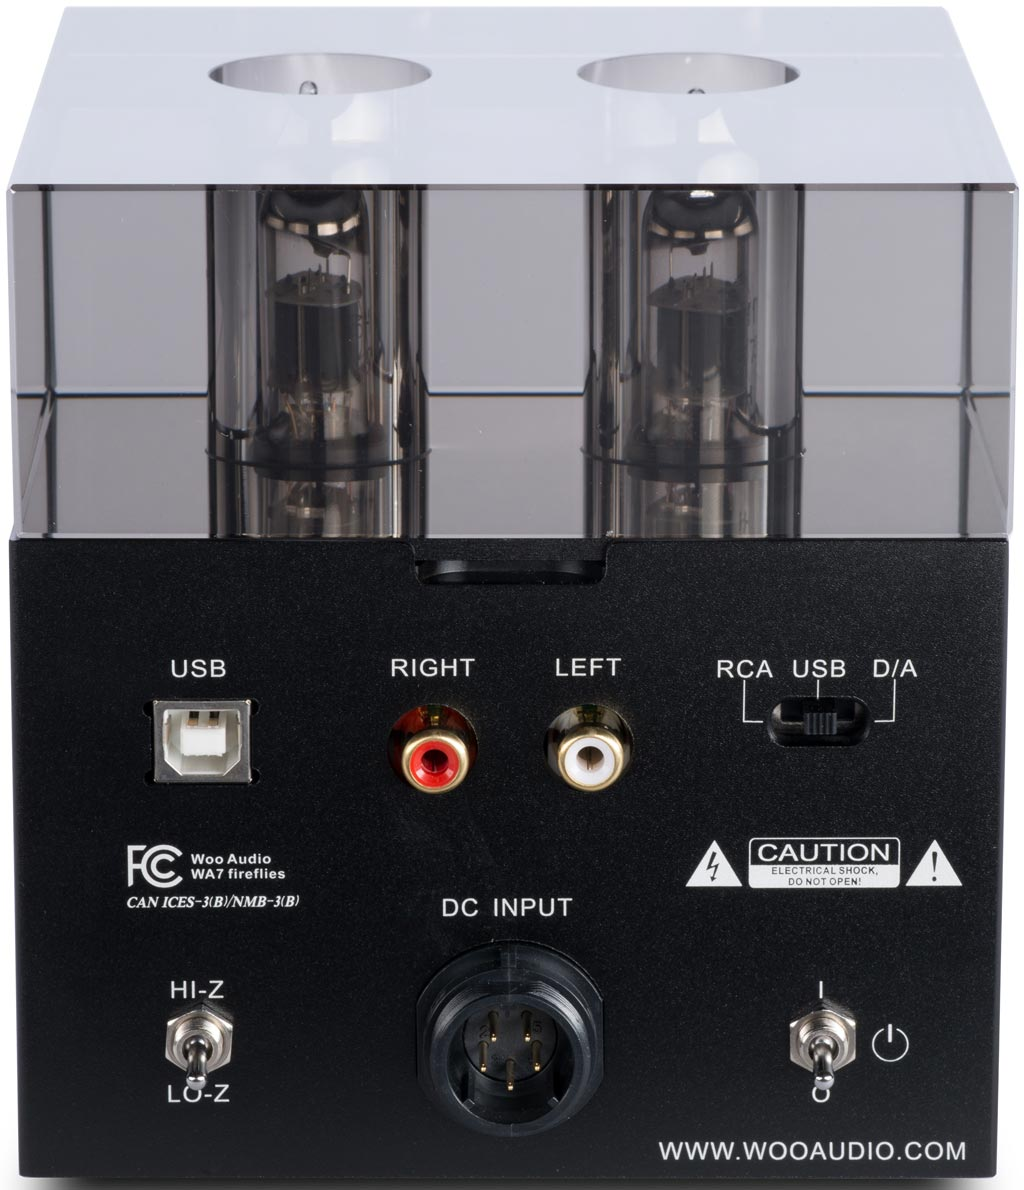 Woo Audio WA7 Fireflies Hube DAC Headphone Amplifier Back Panel